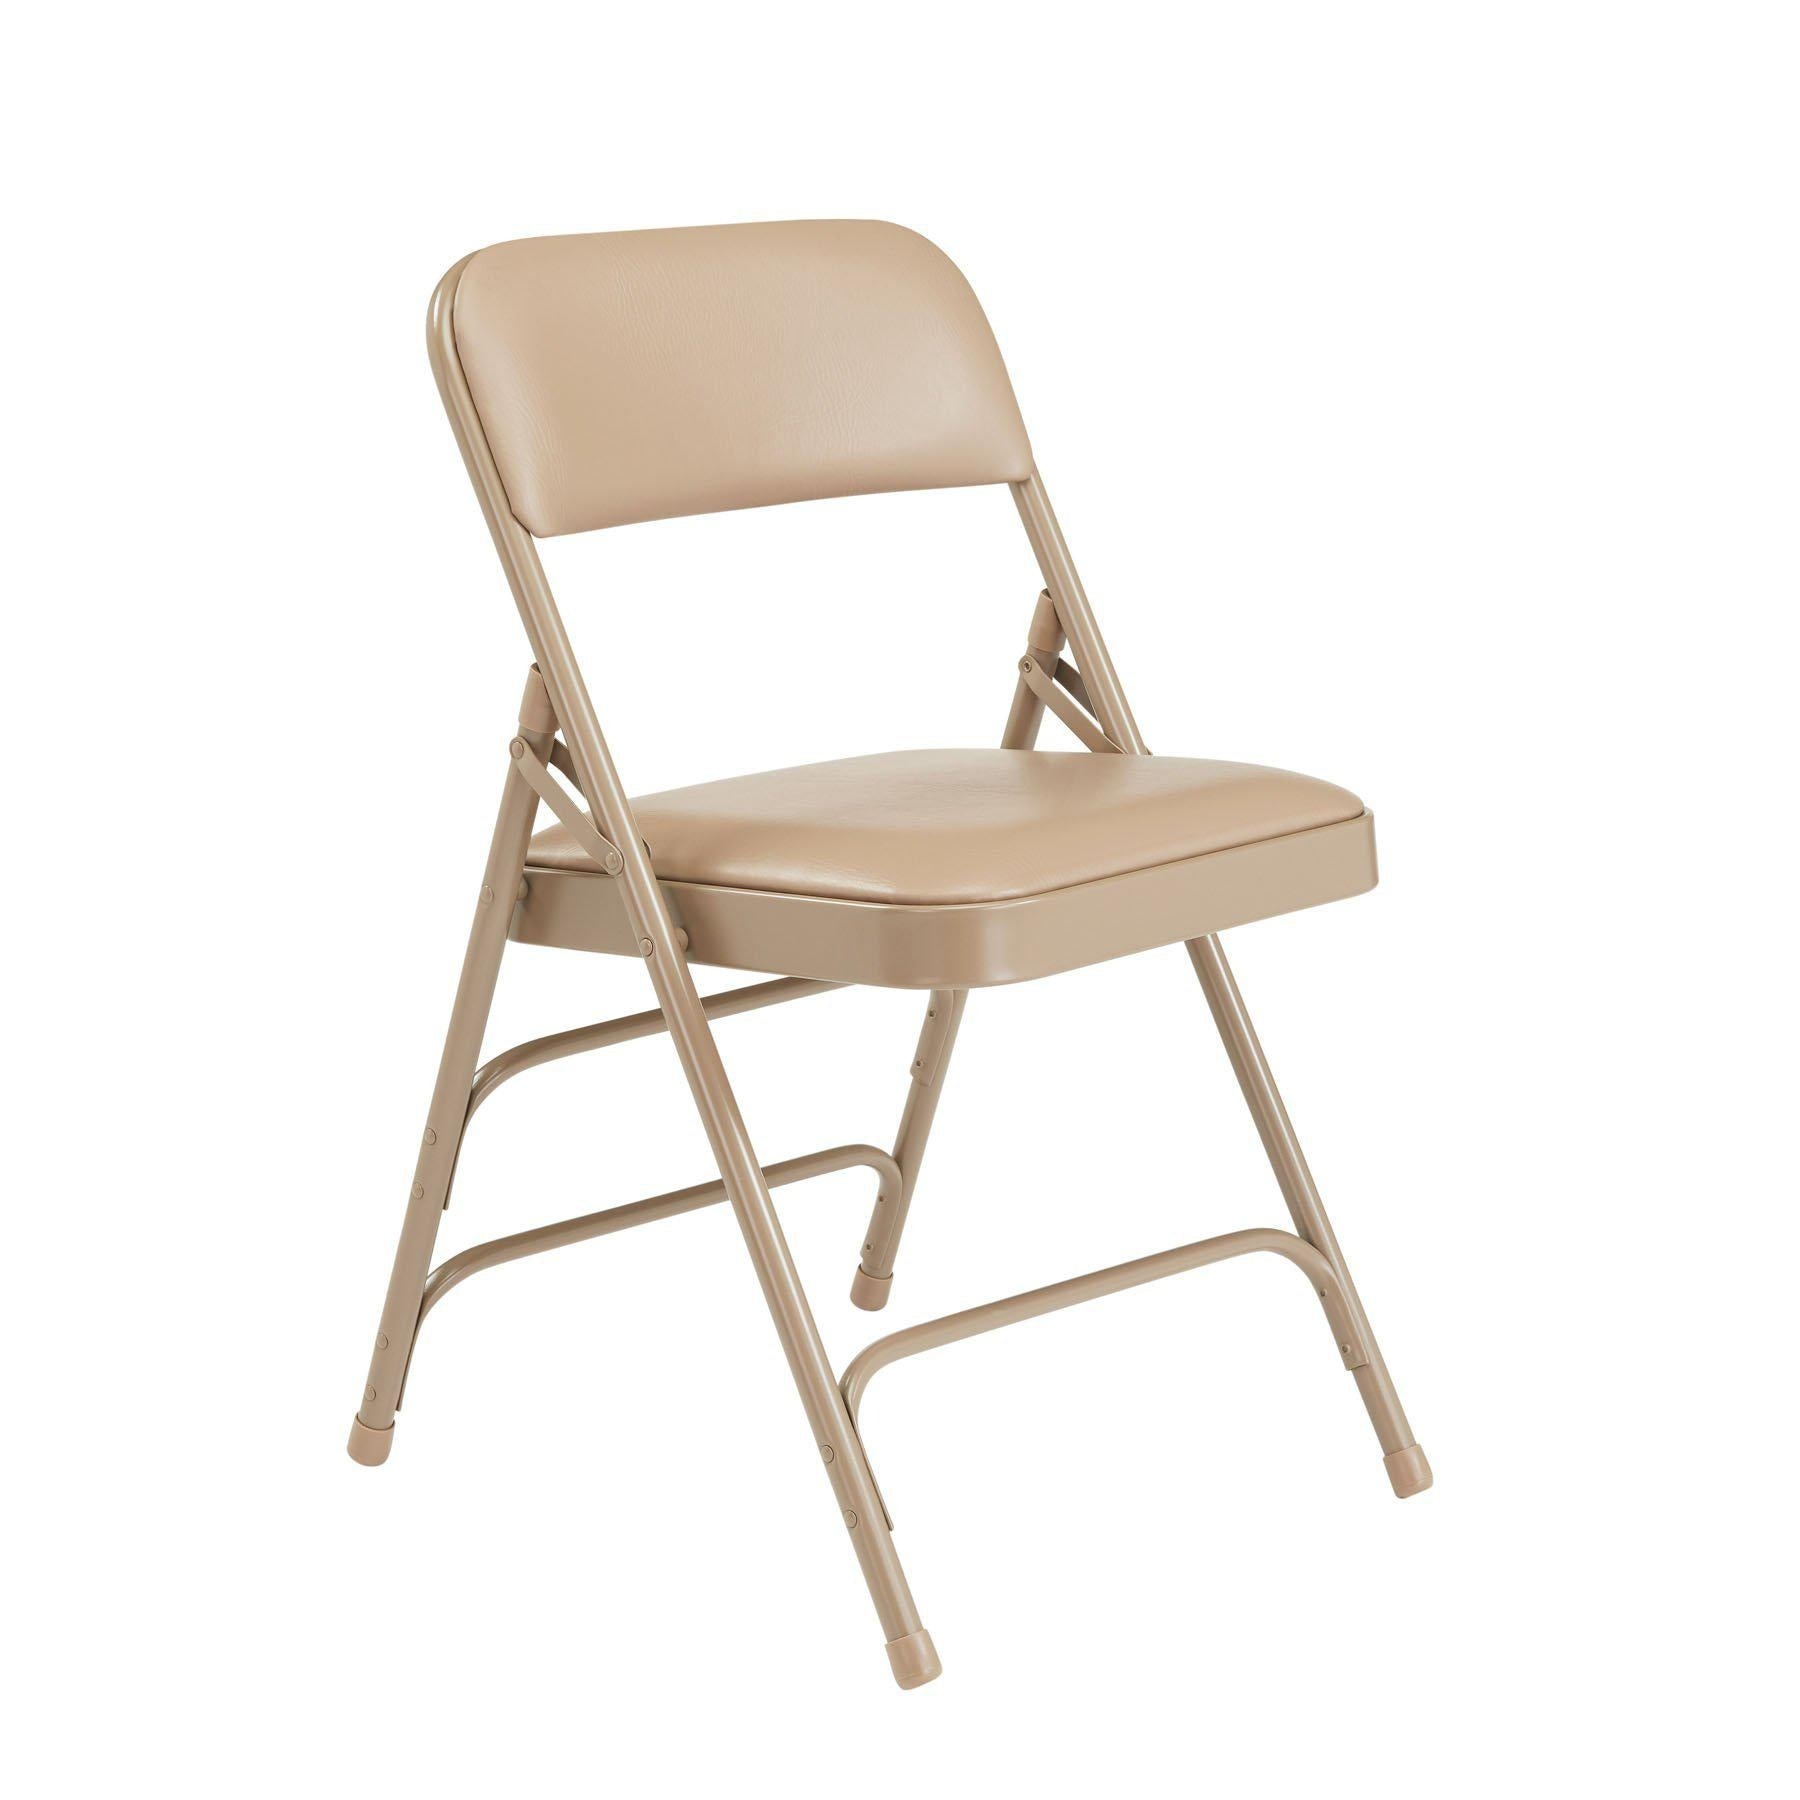 Premium Vinyl Upholstered Triple Brace Double Hinge Folding Chair